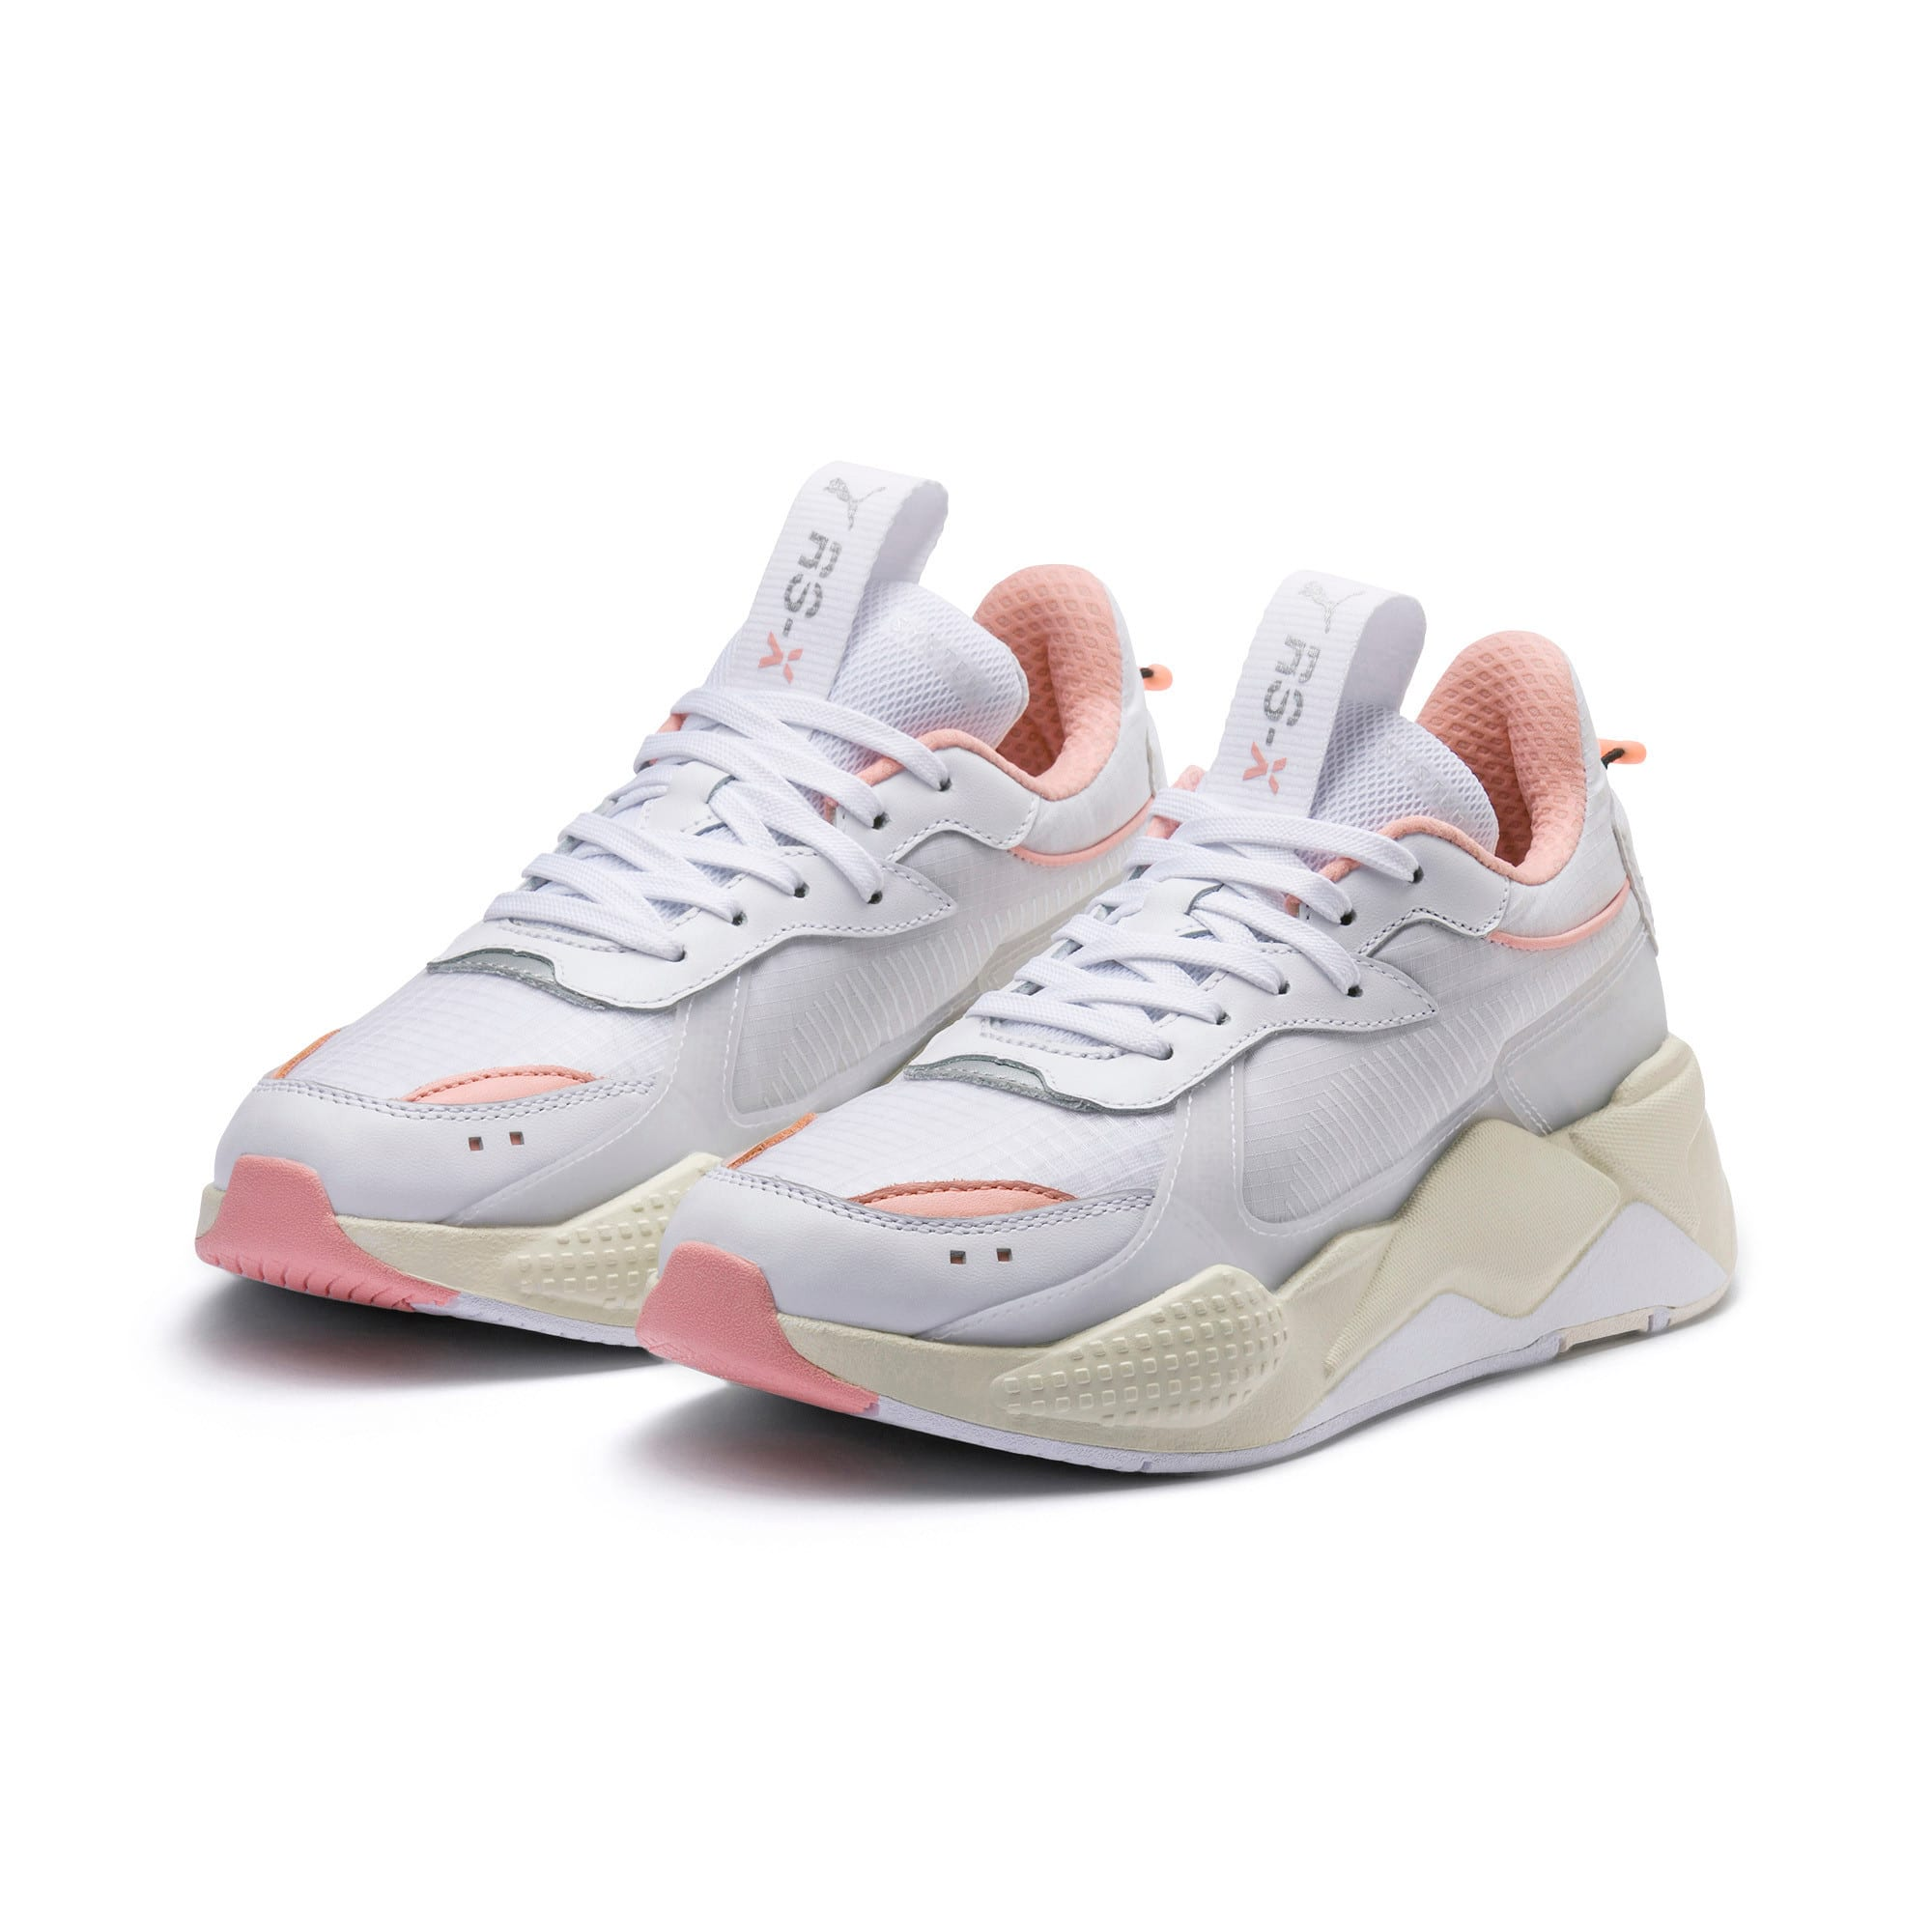 Thumbnail 3 of RS-X TECH Sneakers, Puma White-Peach Bud, medium